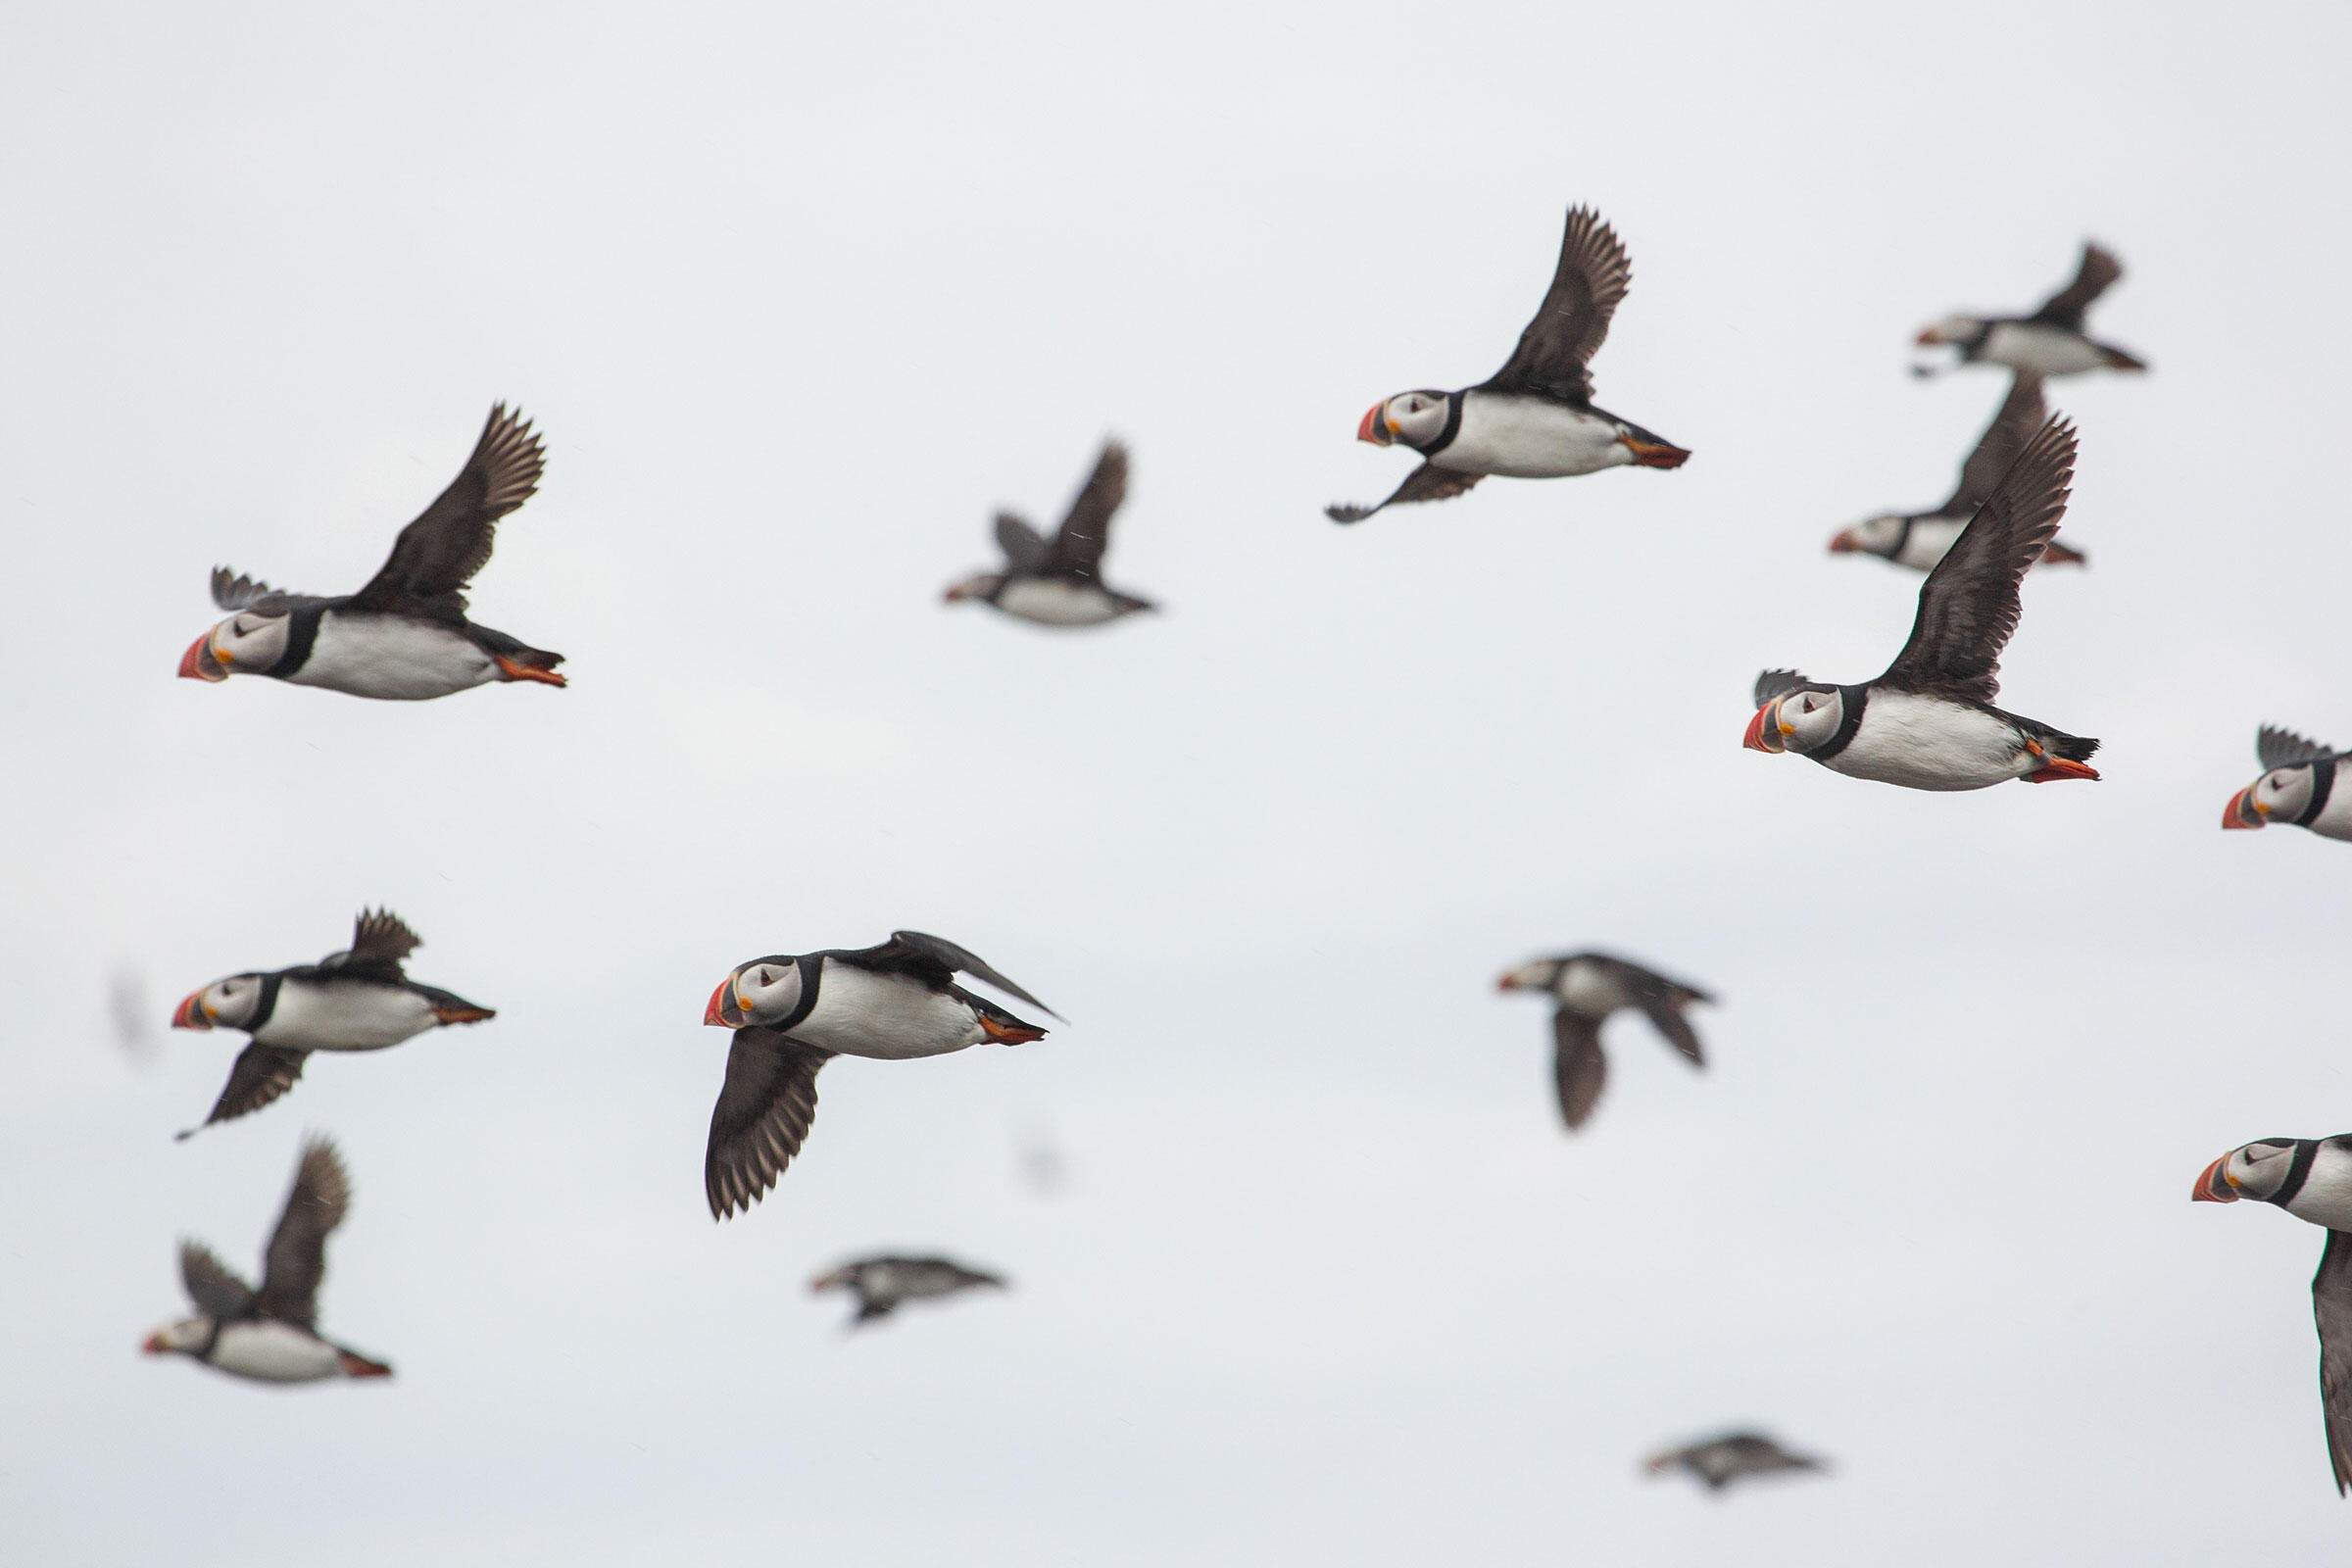 The large number of Atlantic Puffins that call Machias Seal Island home has made it a popular destination for photographers. Christopher Ciccone